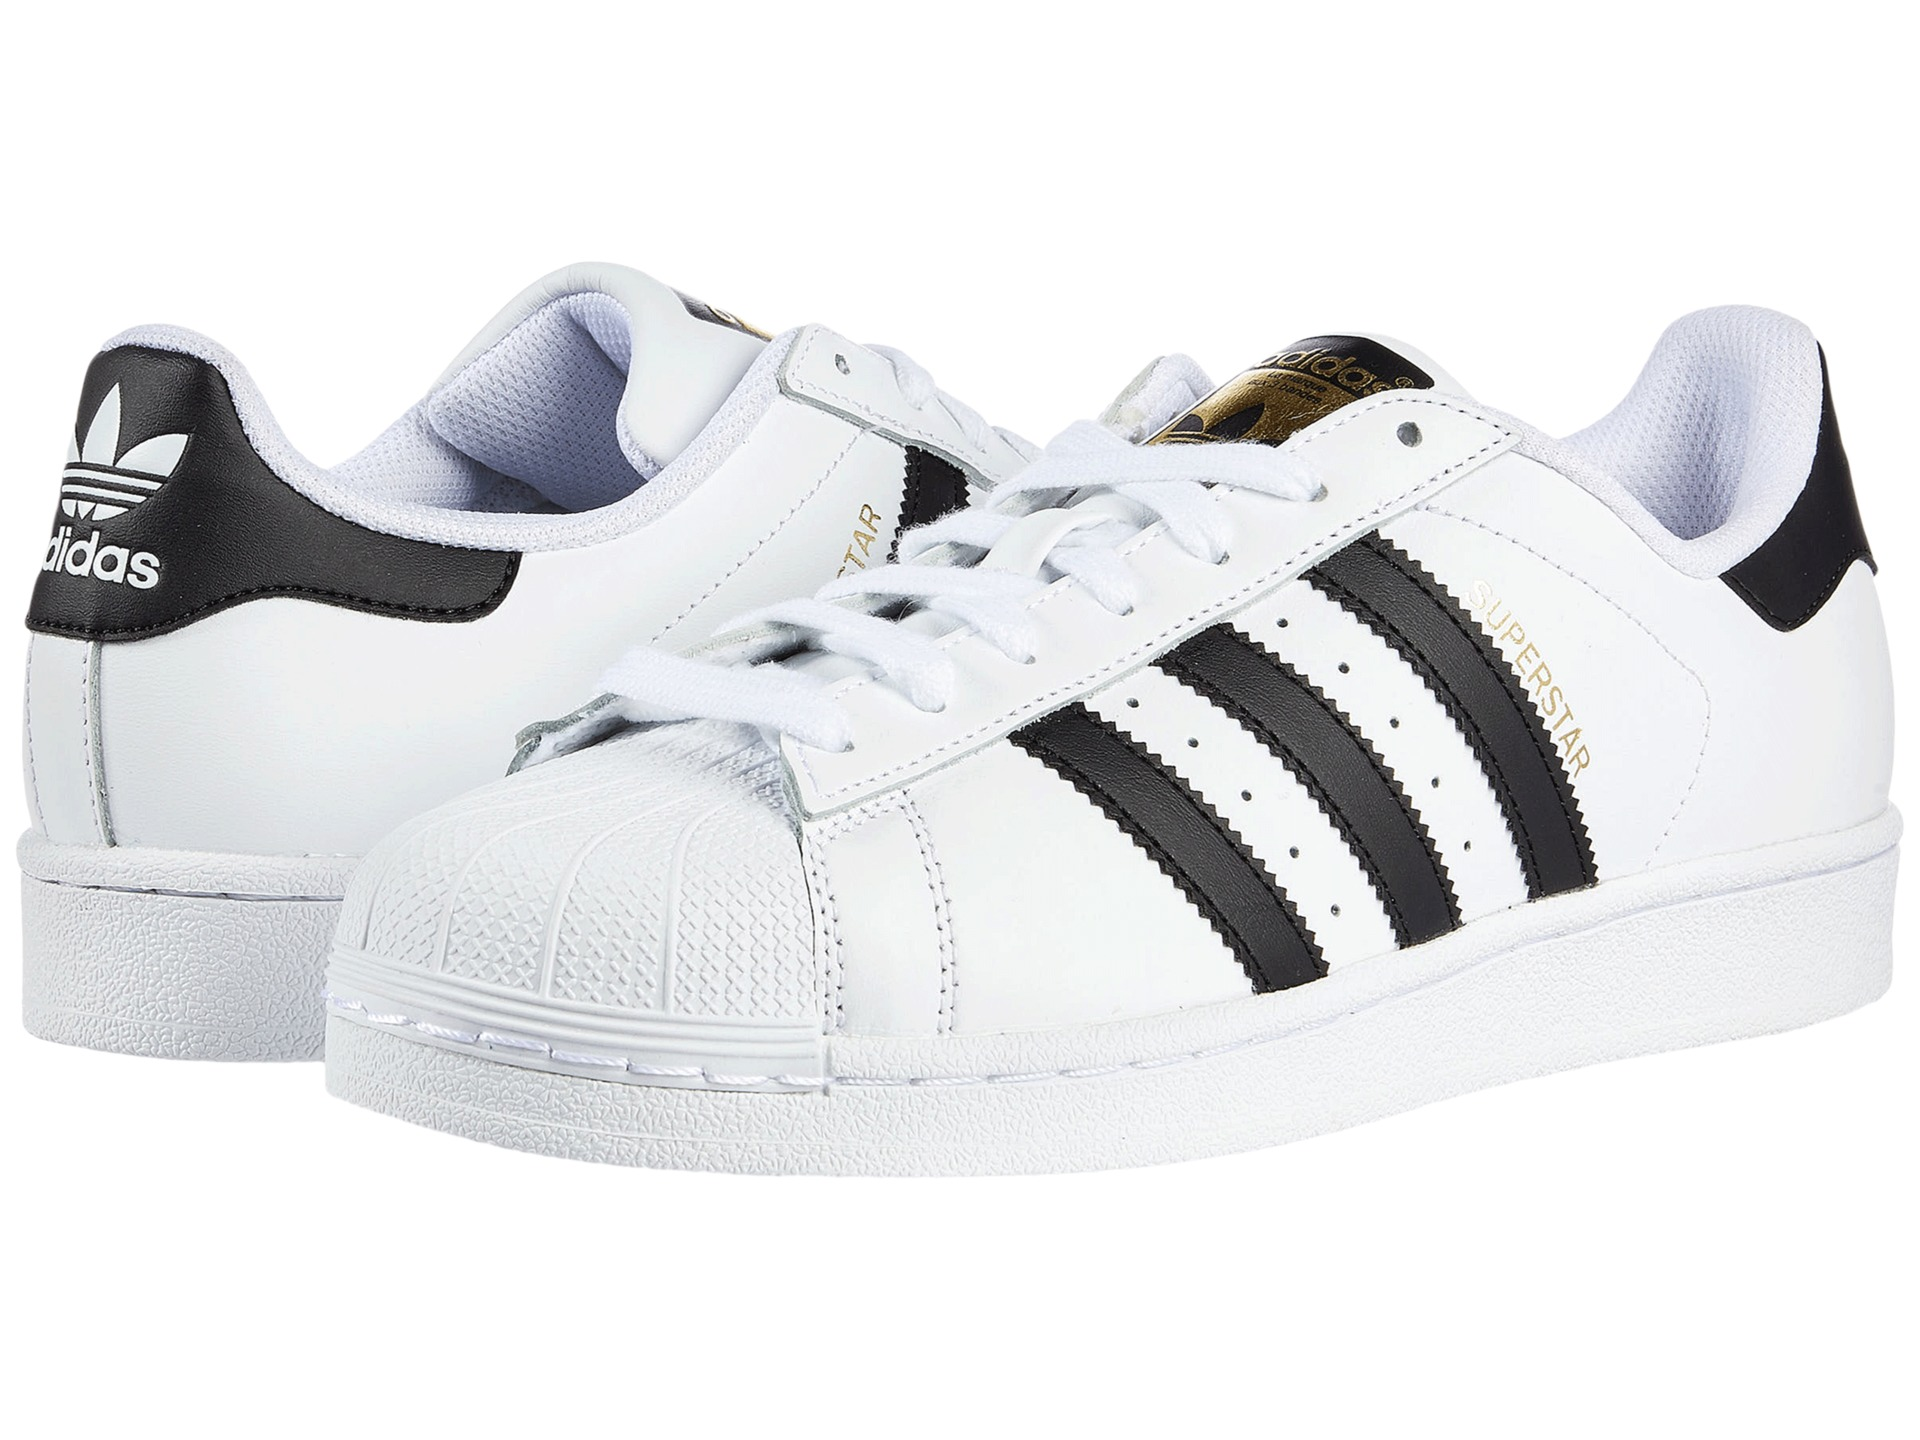 Adidas Superstar Boost Trainers Farfetch